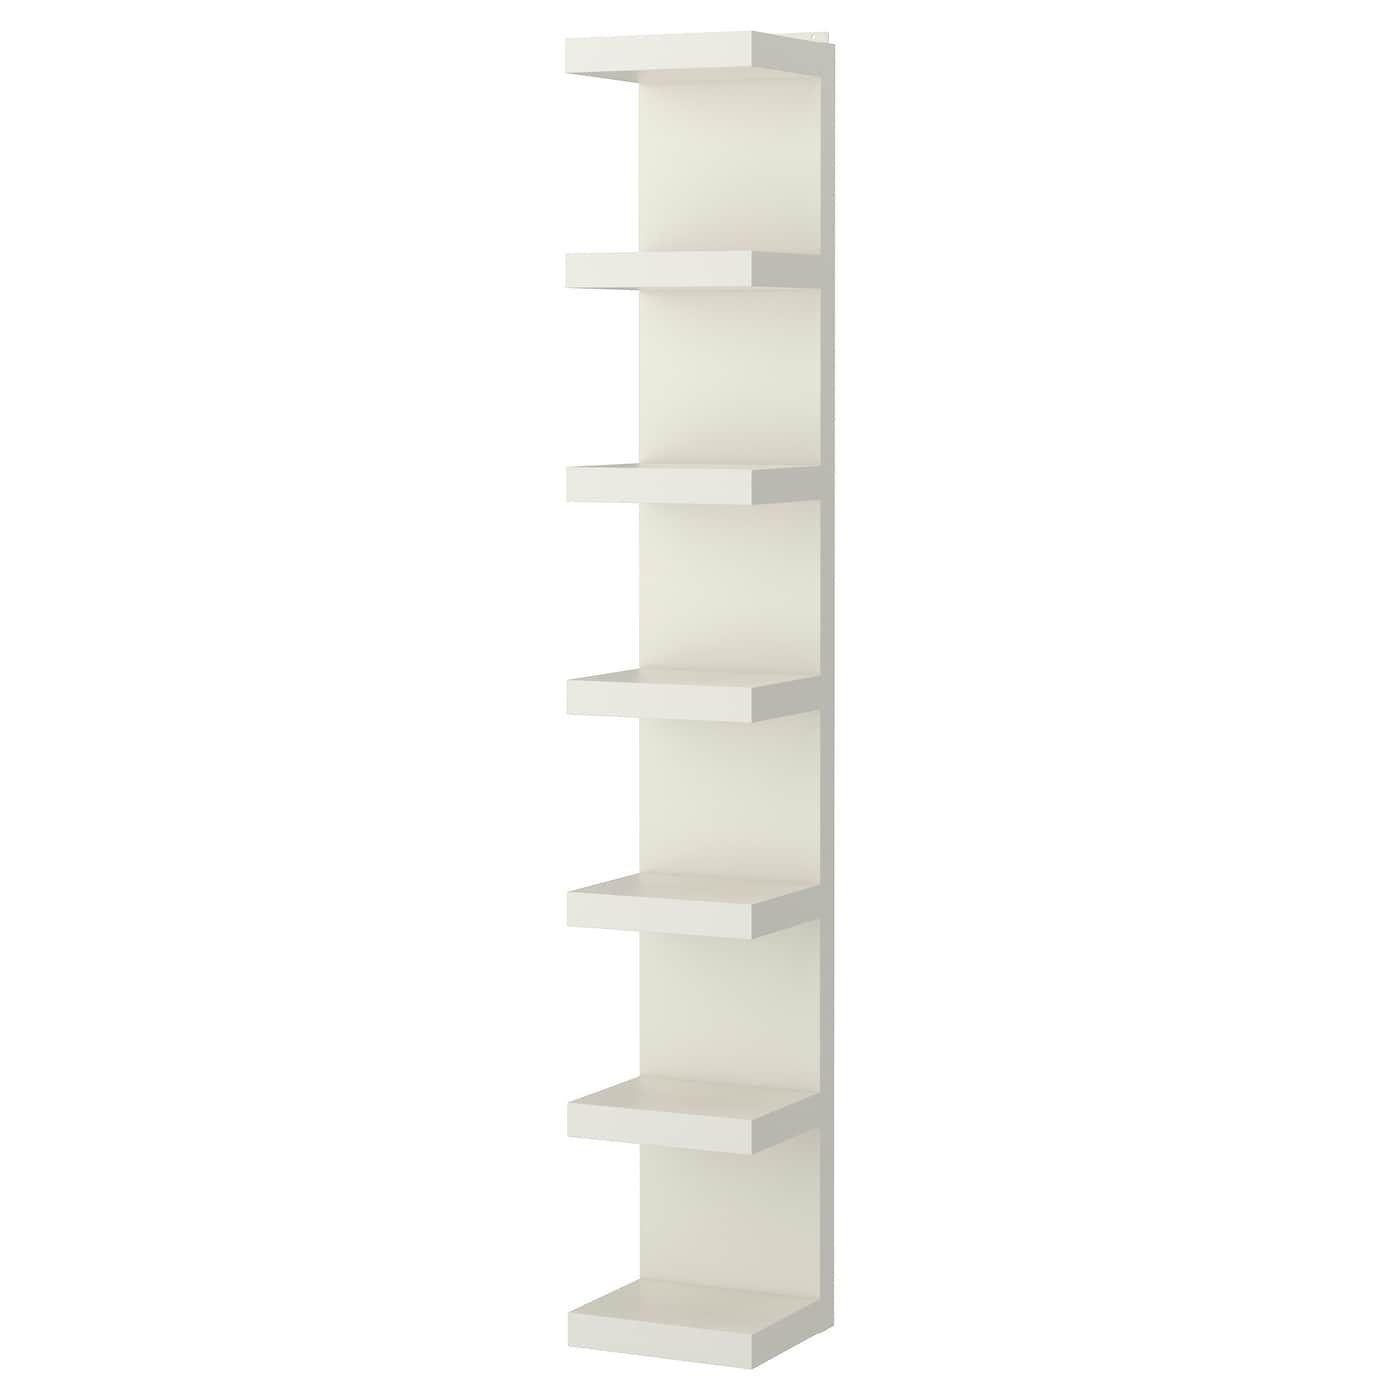 Tremendous Lack Wall Shelf Unit White Home Interior And Landscaping Ferensignezvosmurscom